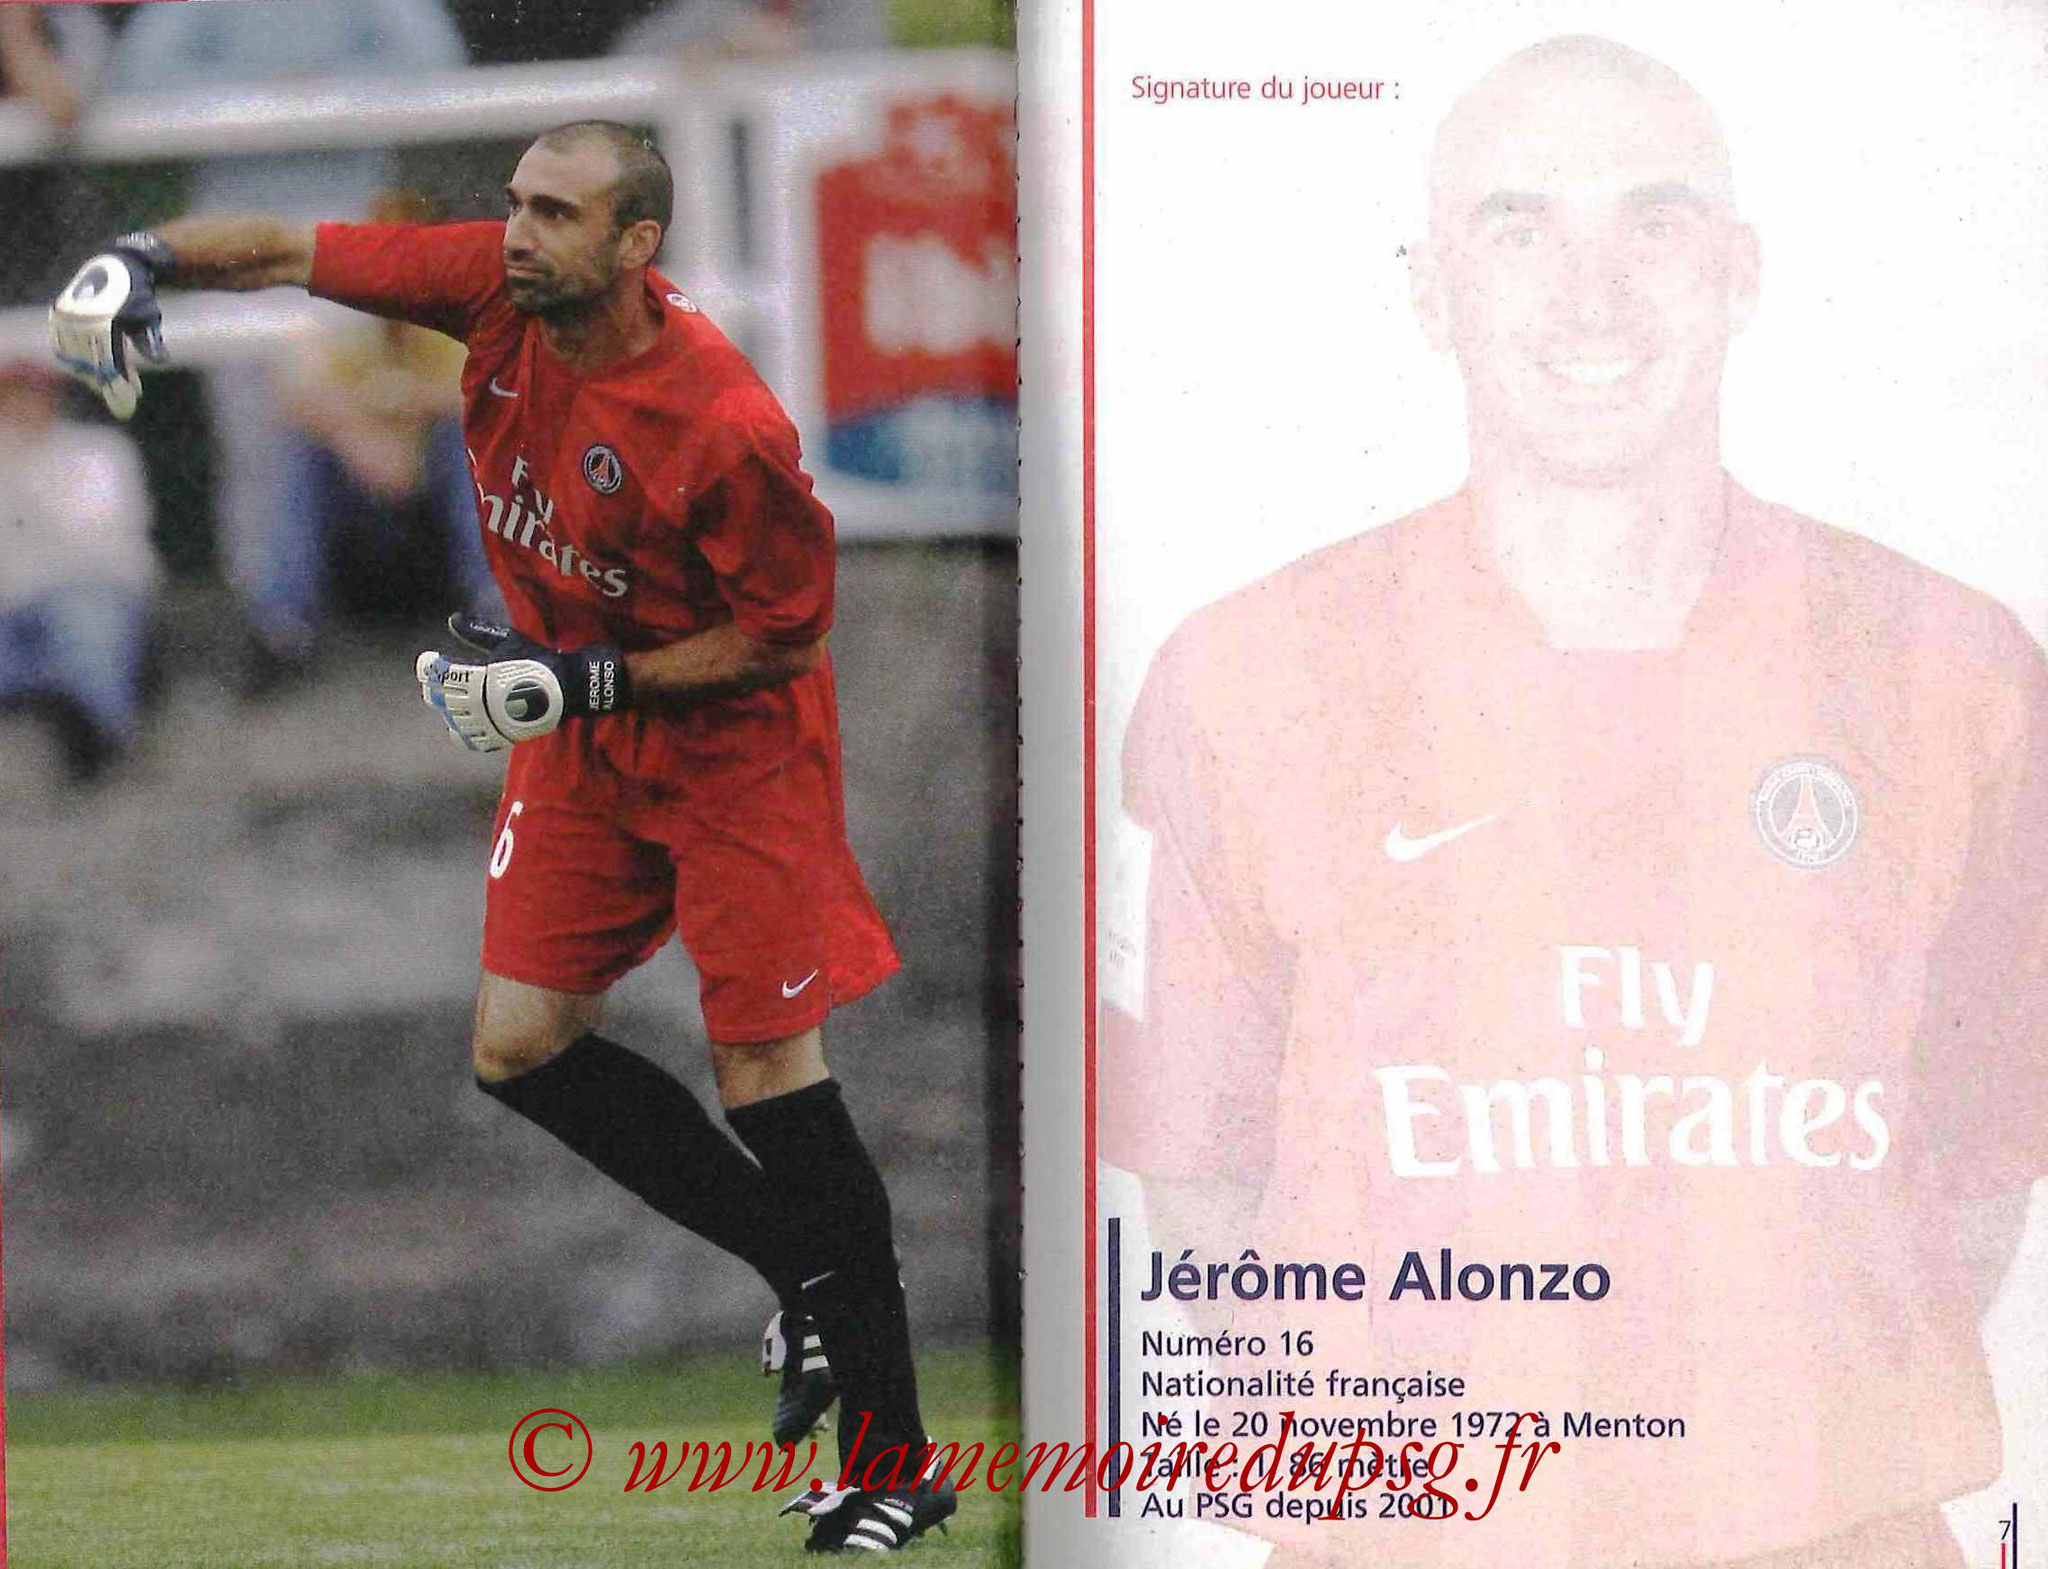 2007-08 - Guide de la Saison PSG - Pages 6 et 7 - Jerome ALONZO